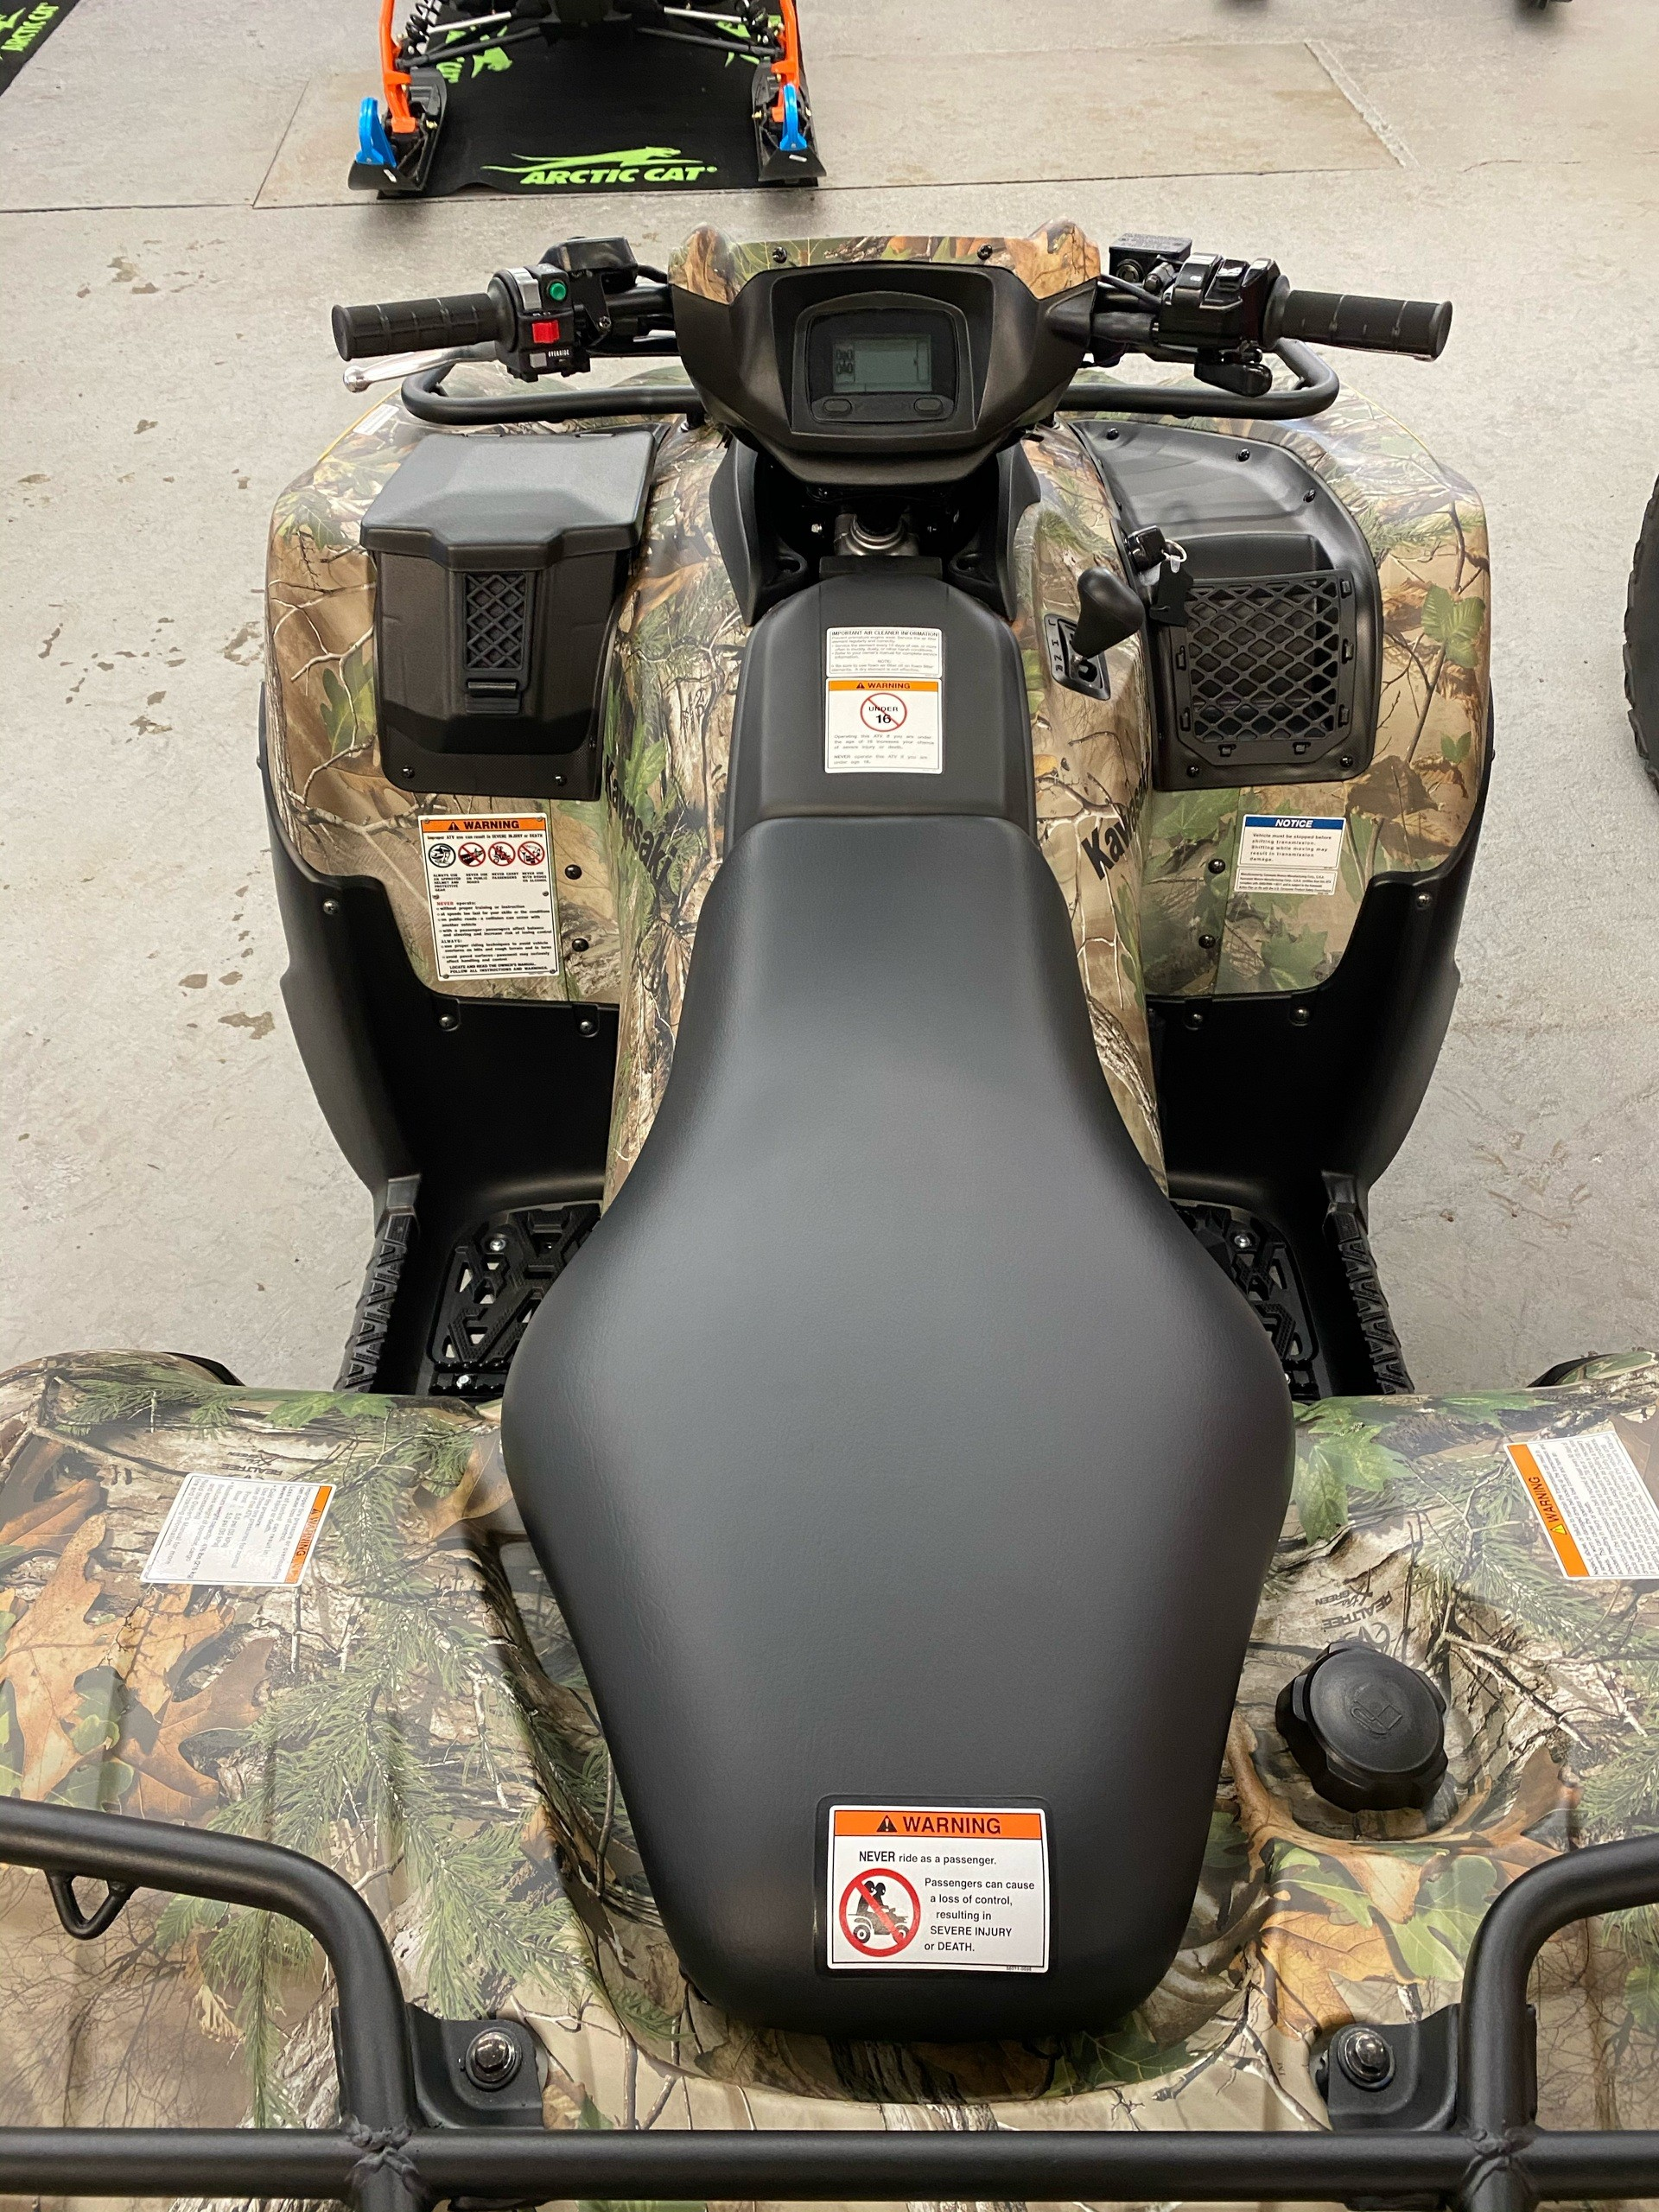 2021 Kawasaki Brute Force 750 4x4i EPS Camo in Bellingham, Washington - Photo 3